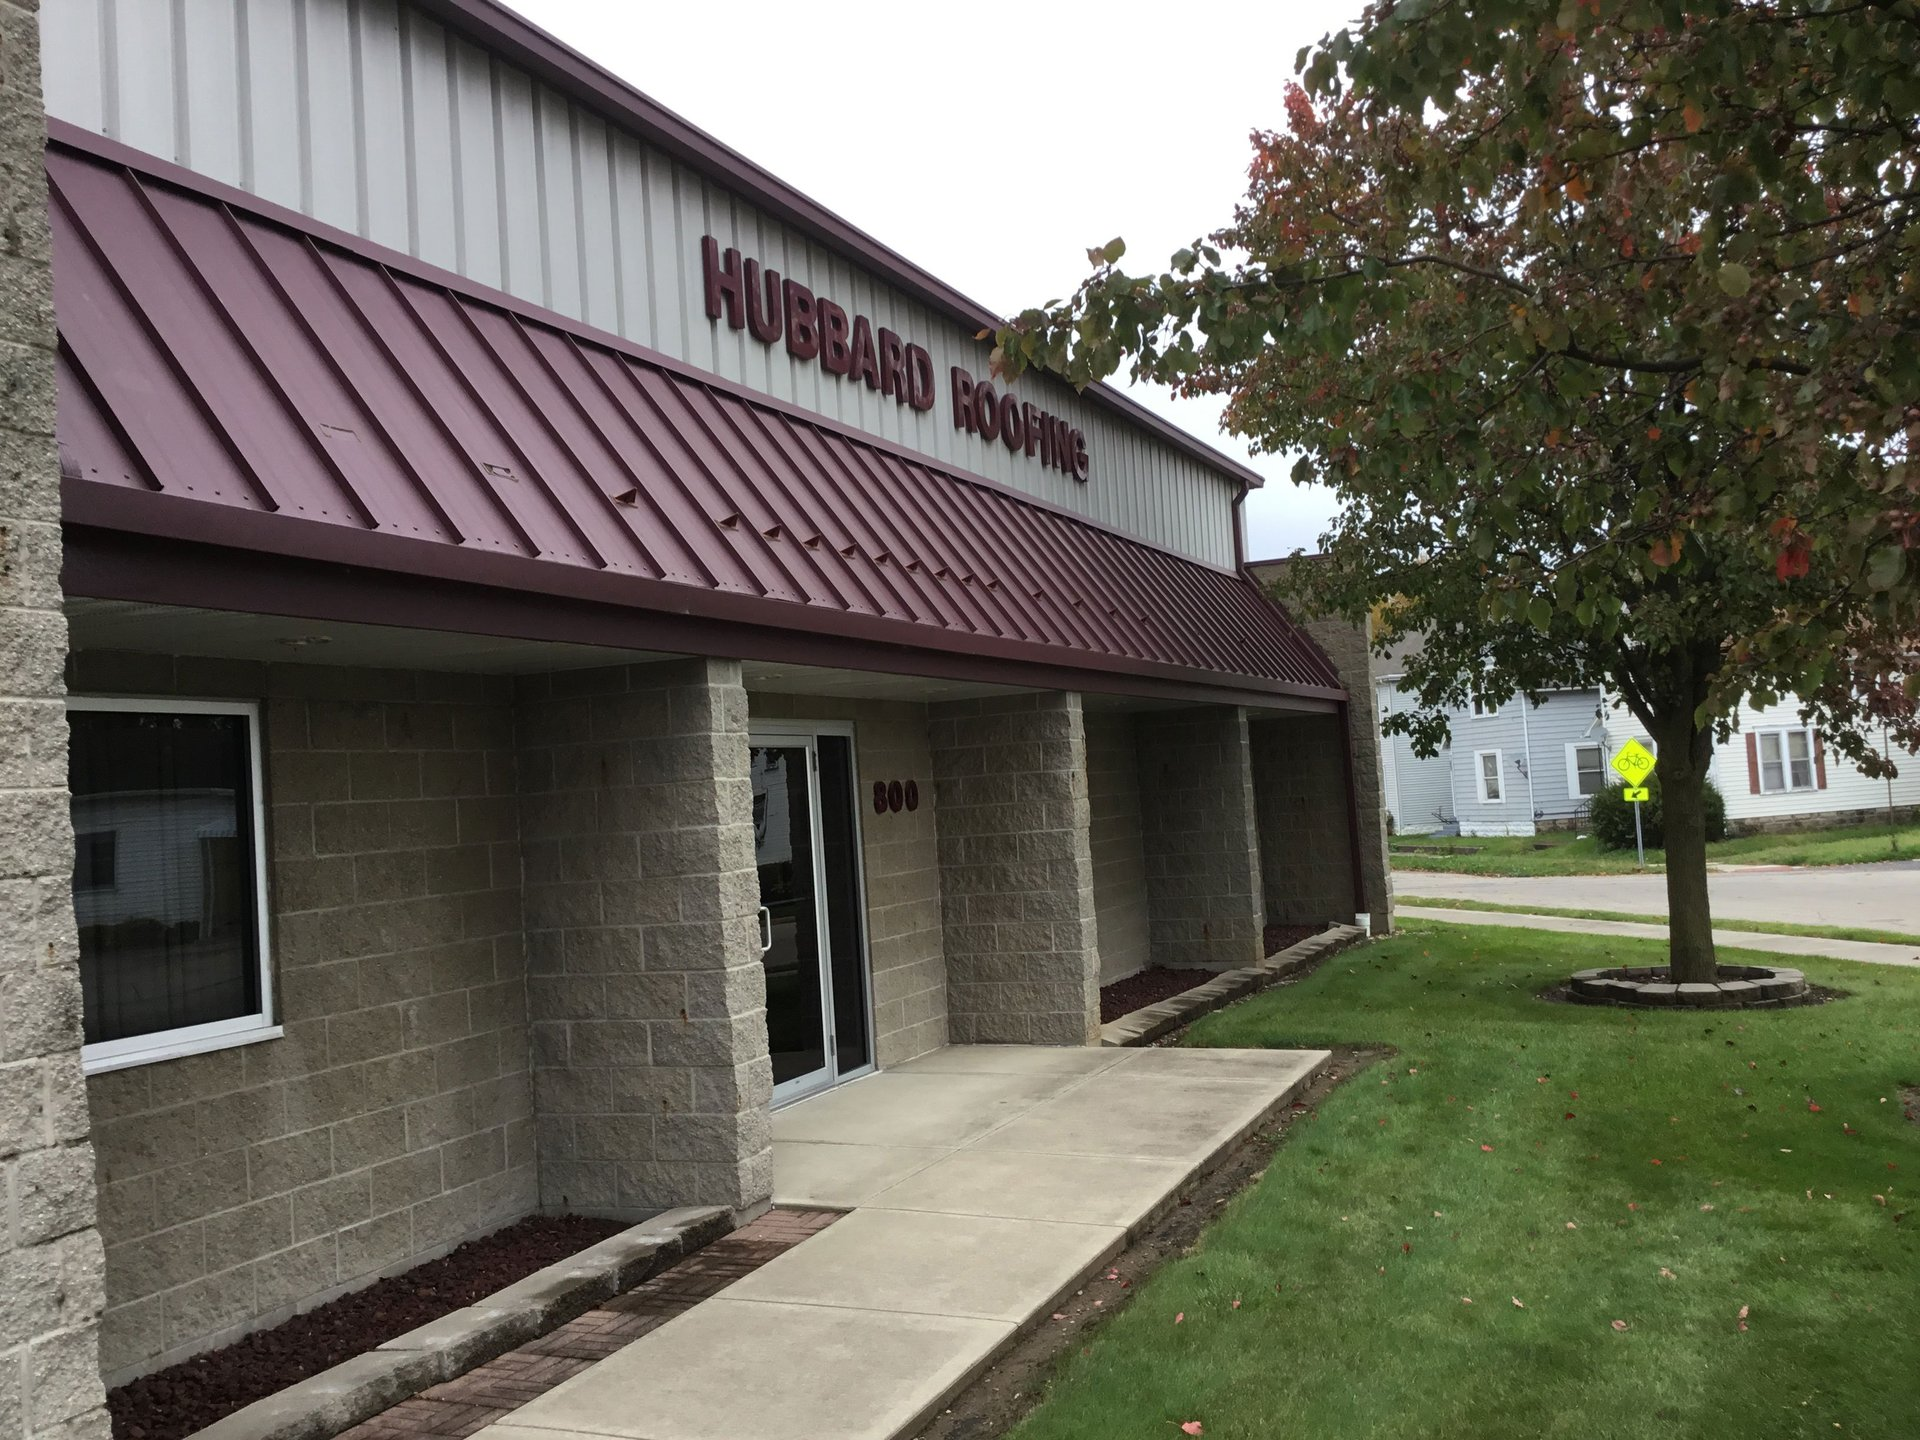 Hubbard Roofing, Inc Office